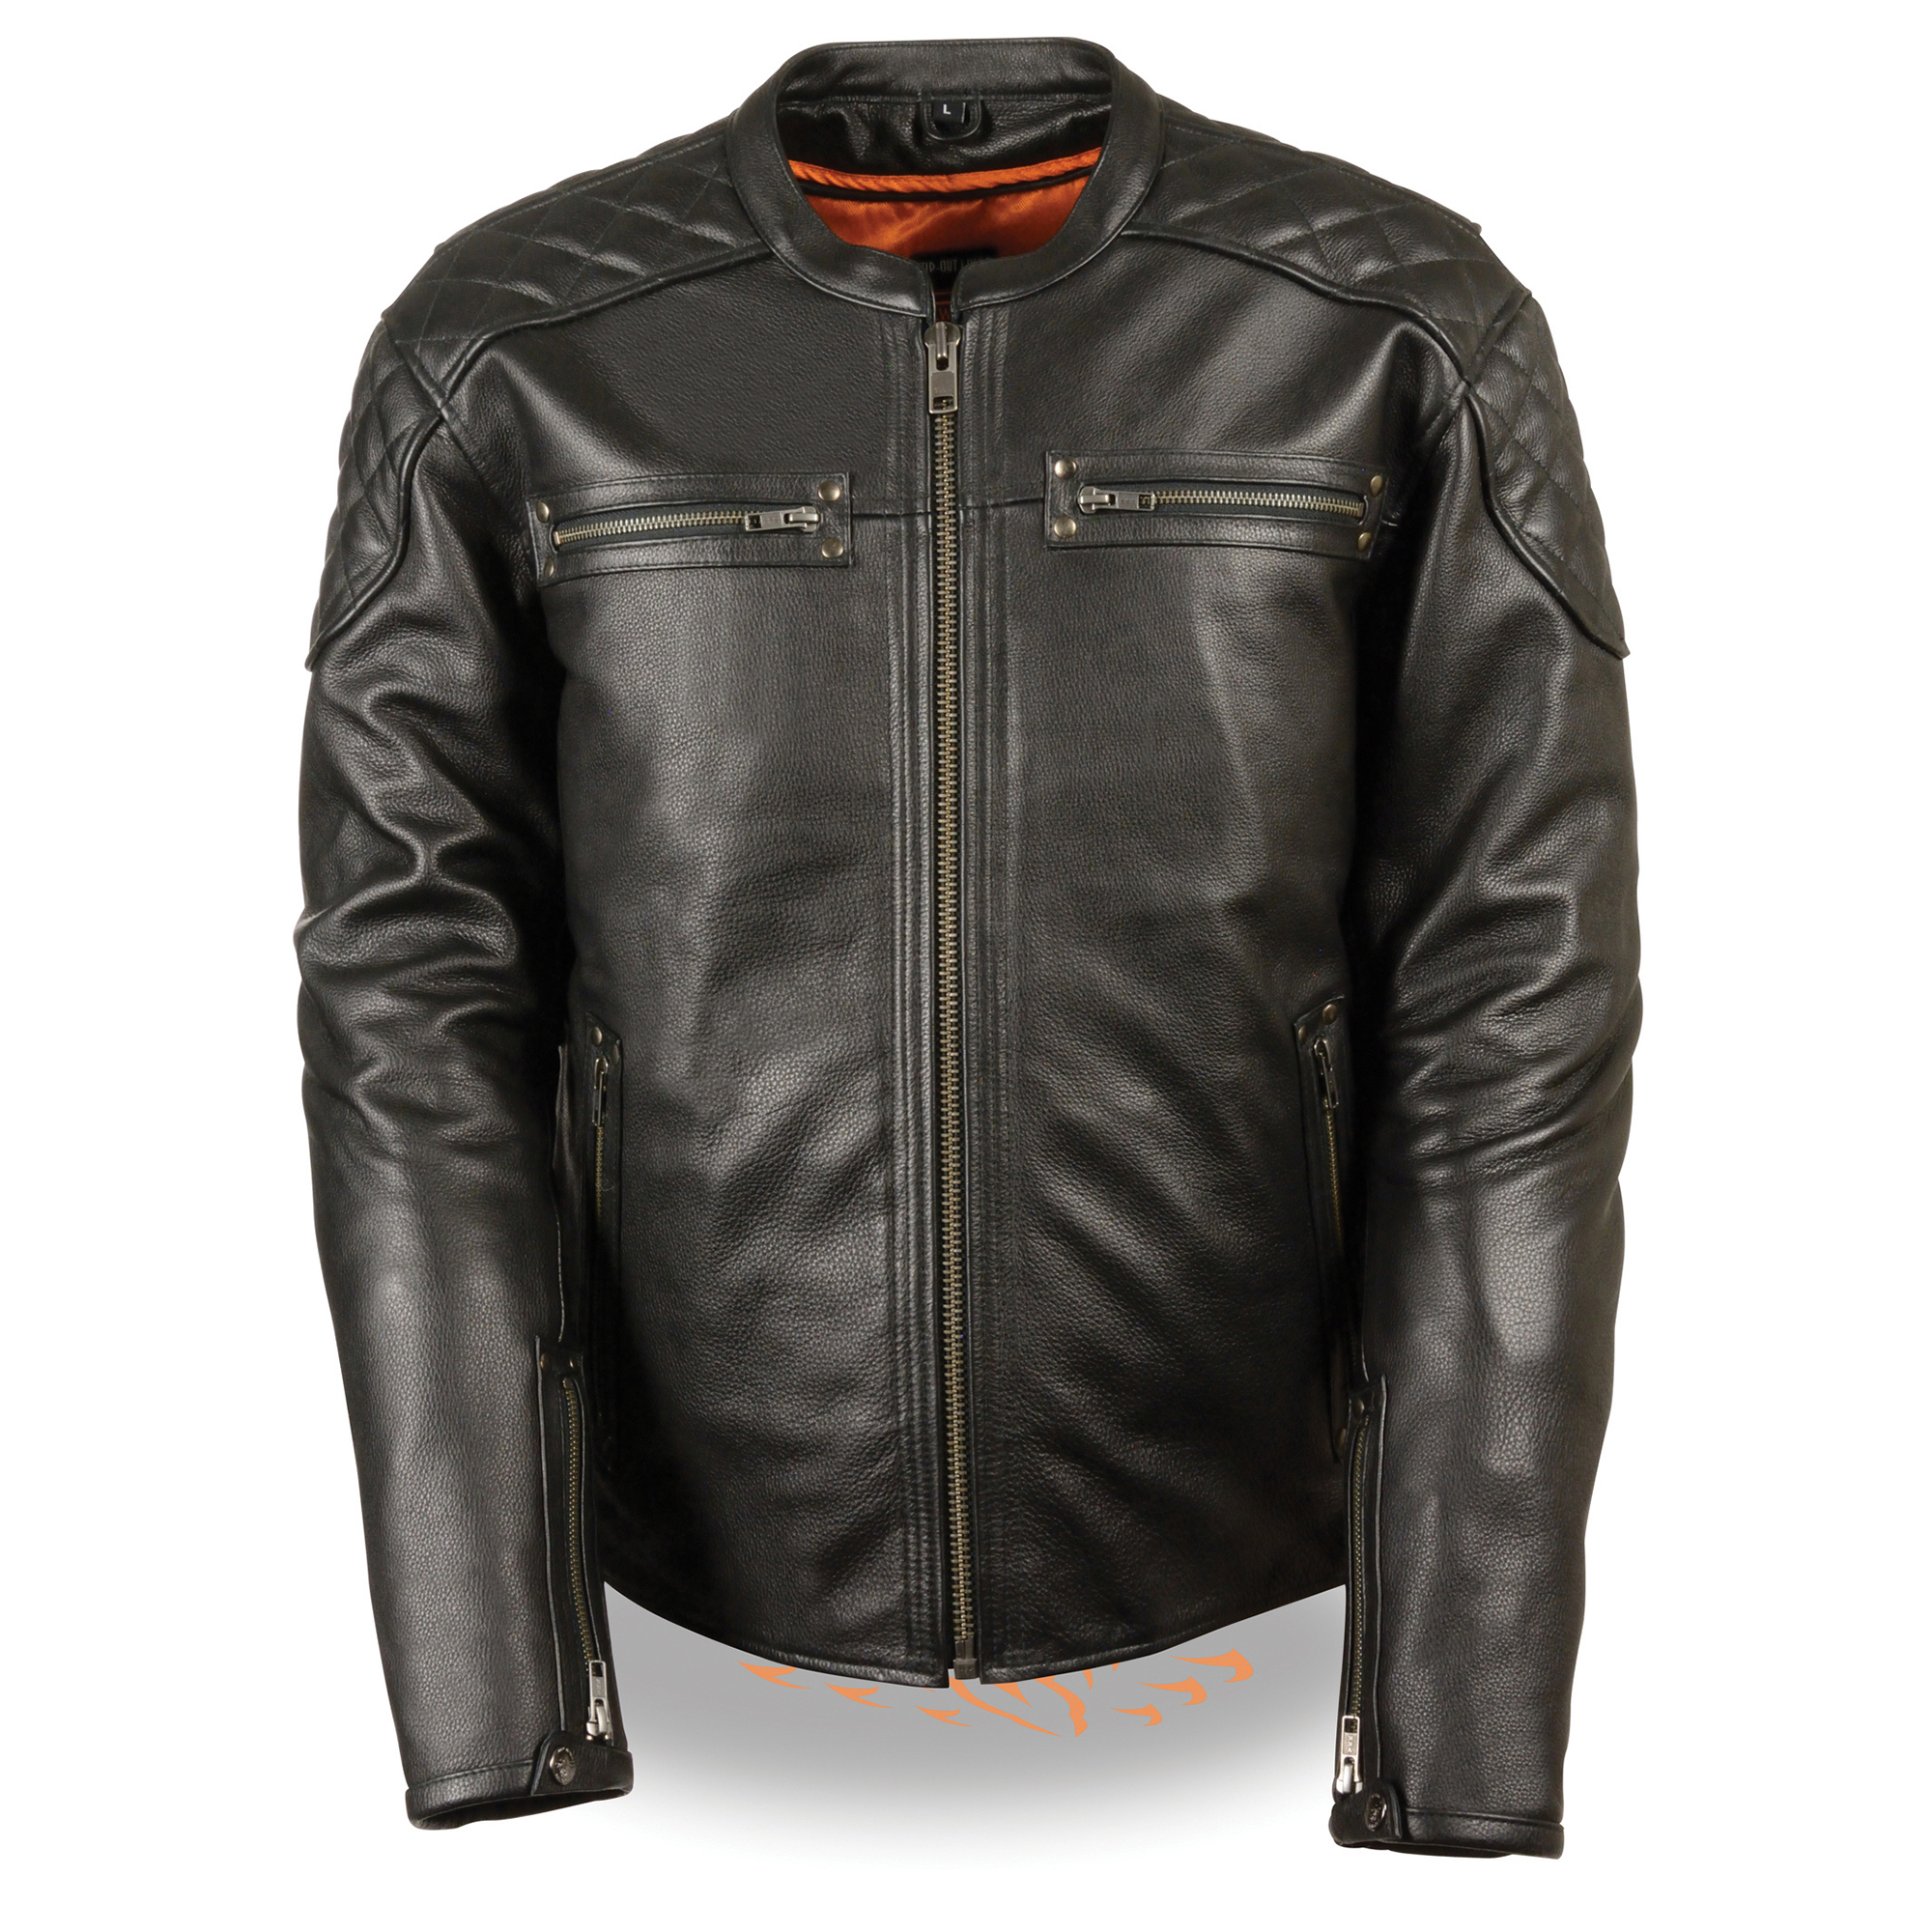 Dynamic Leather - Site - photo #36